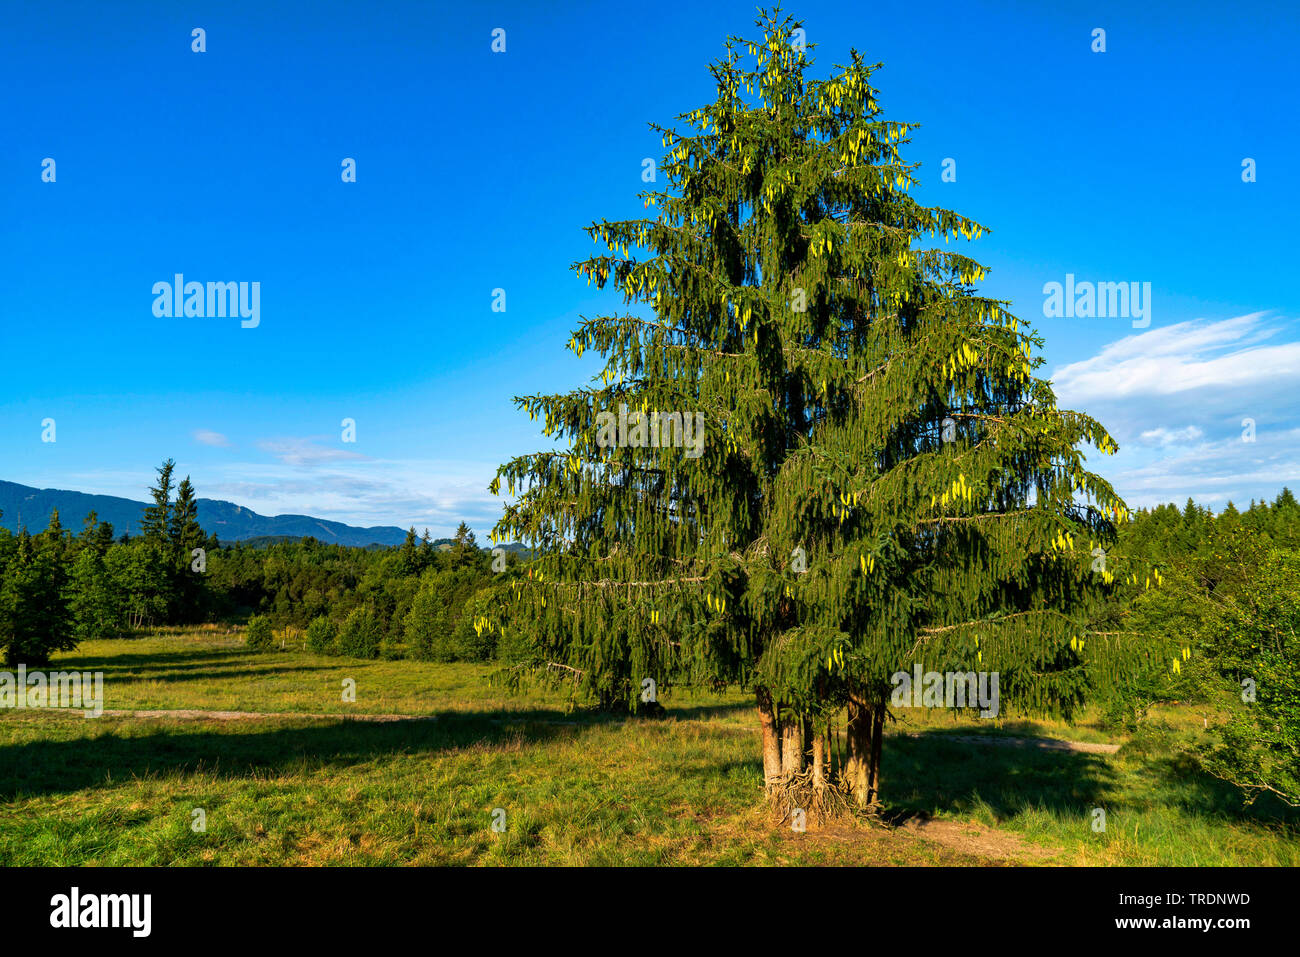 Norway spruce (Picea abies), spruces with cones, Germany, Bavaria, Oberbayern, Upper Bavaria - Stock Image